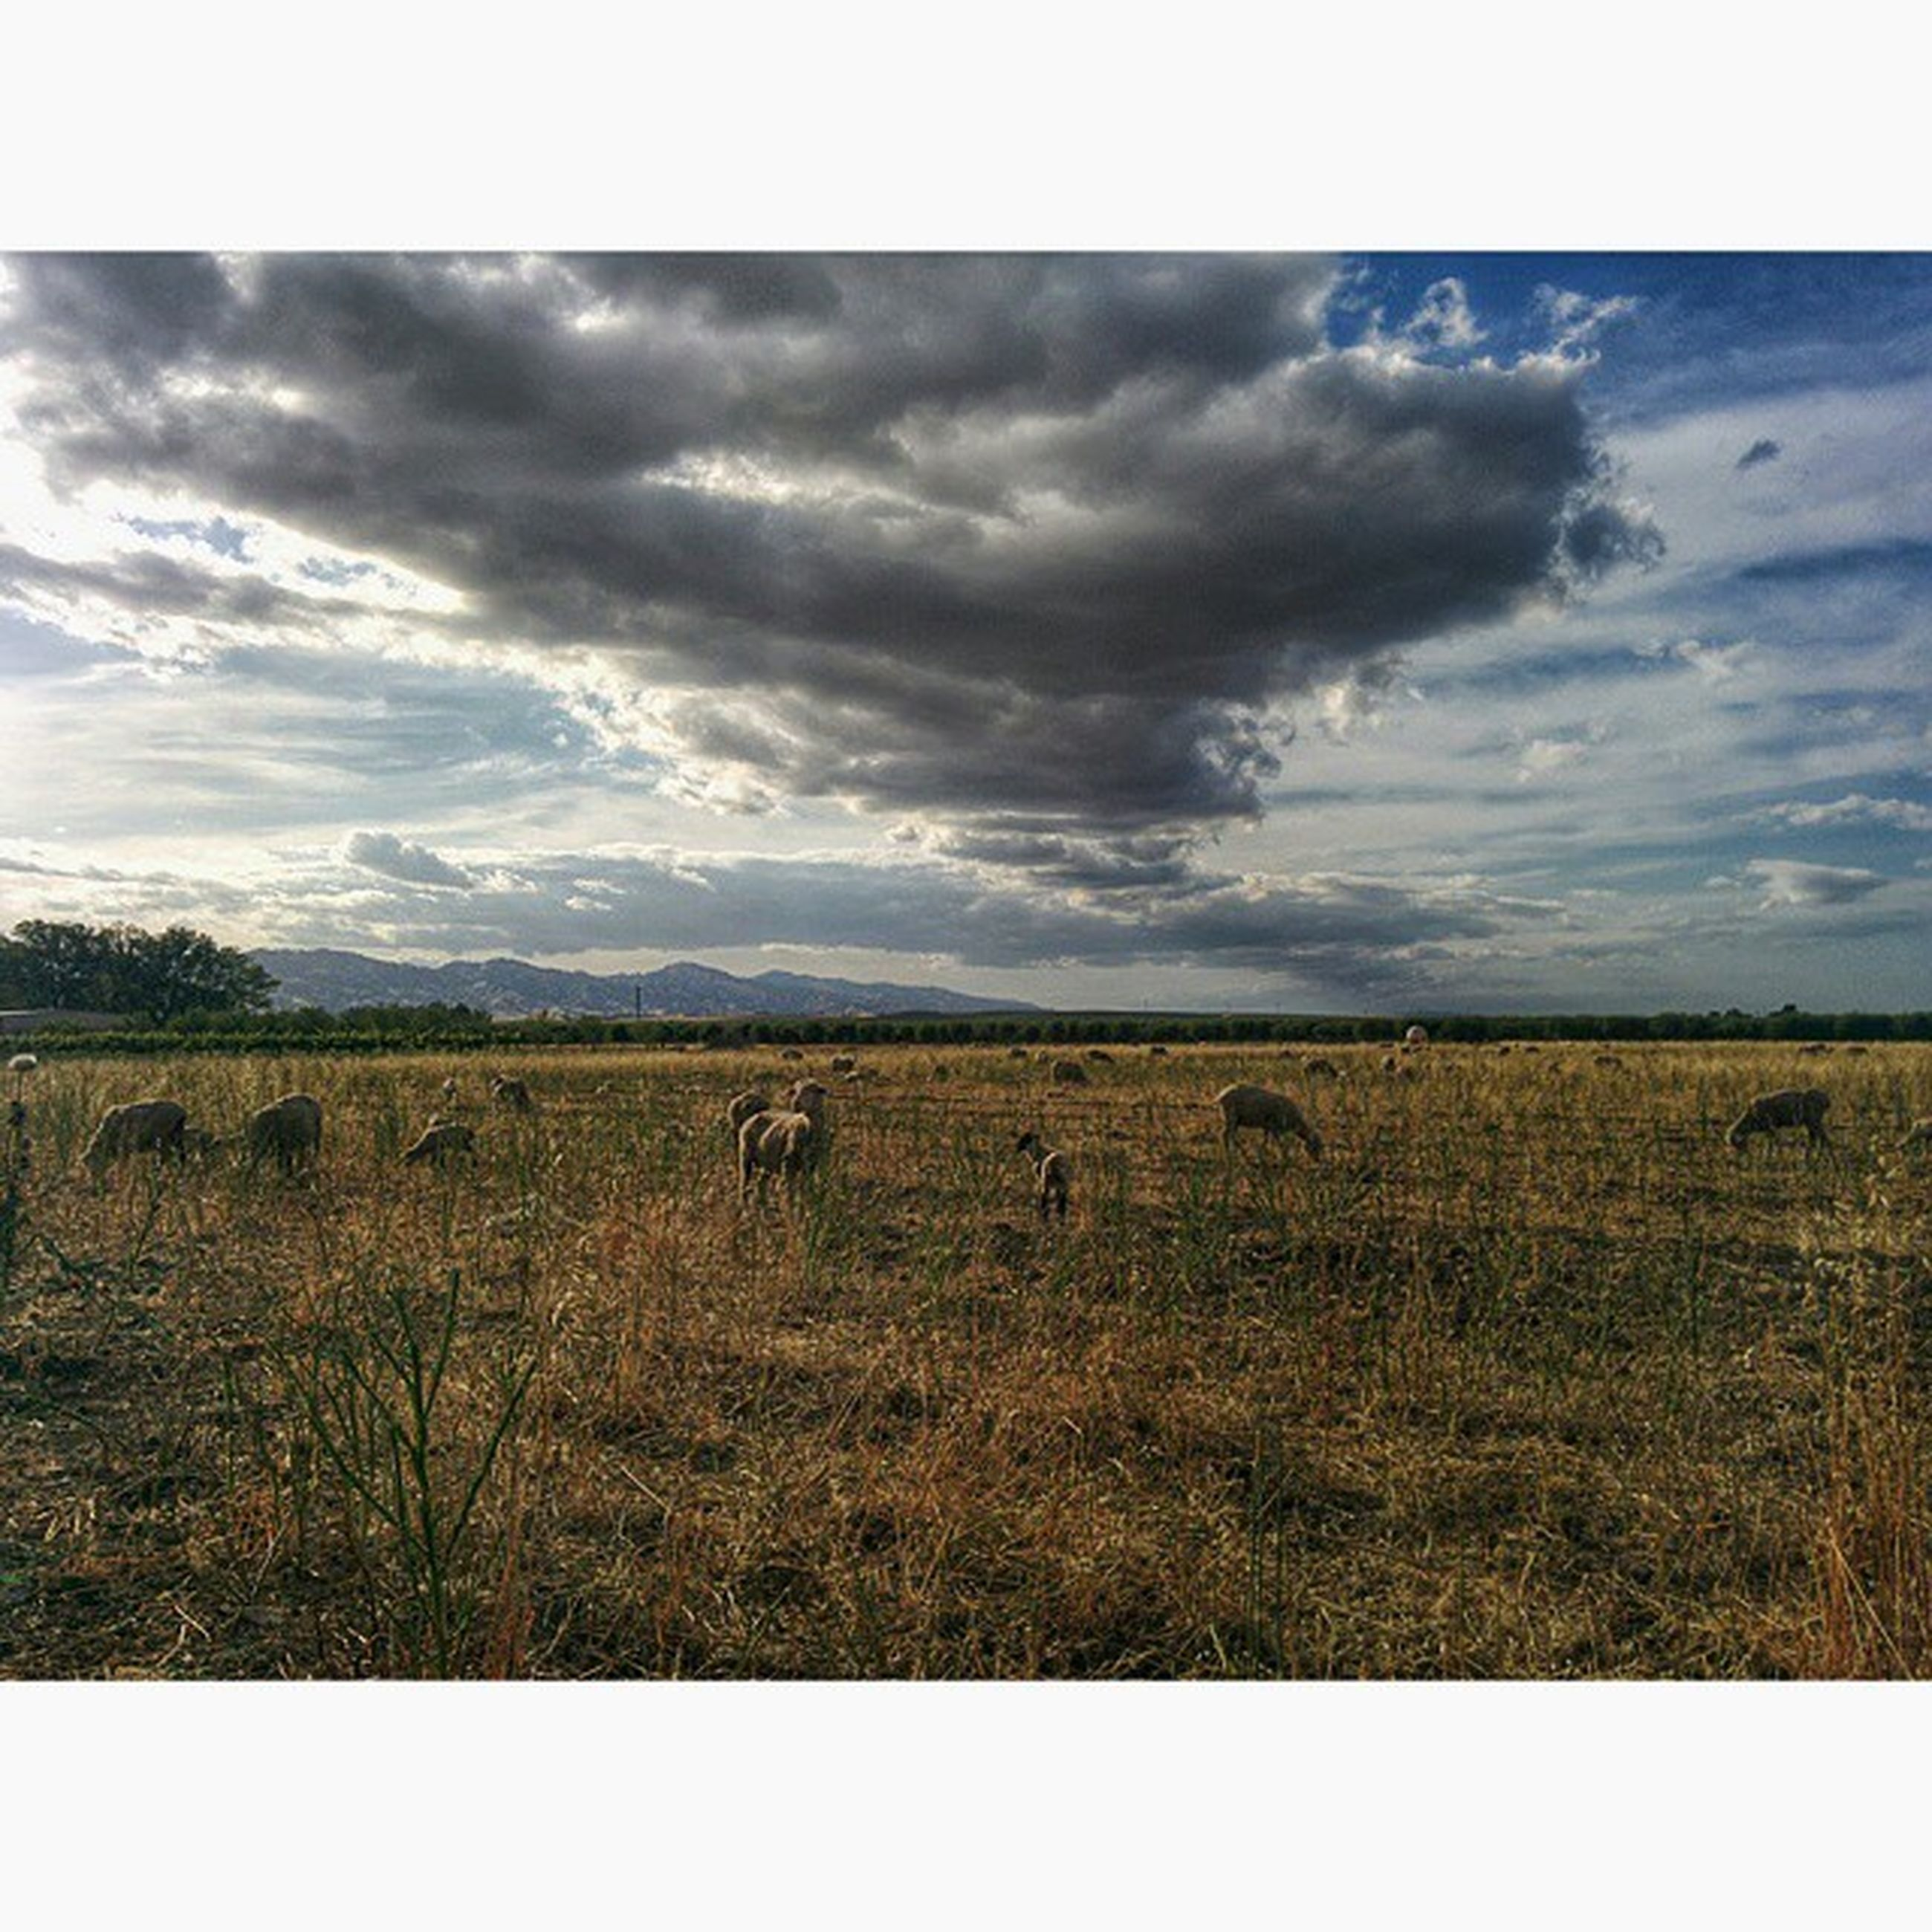 sky, field, cloud - sky, landscape, tranquil scene, cloudy, tranquility, rural scene, scenics, nature, beauty in nature, cloud, grass, transfer print, horizon over land, auto post production filter, agriculture, growth, overcast, farm